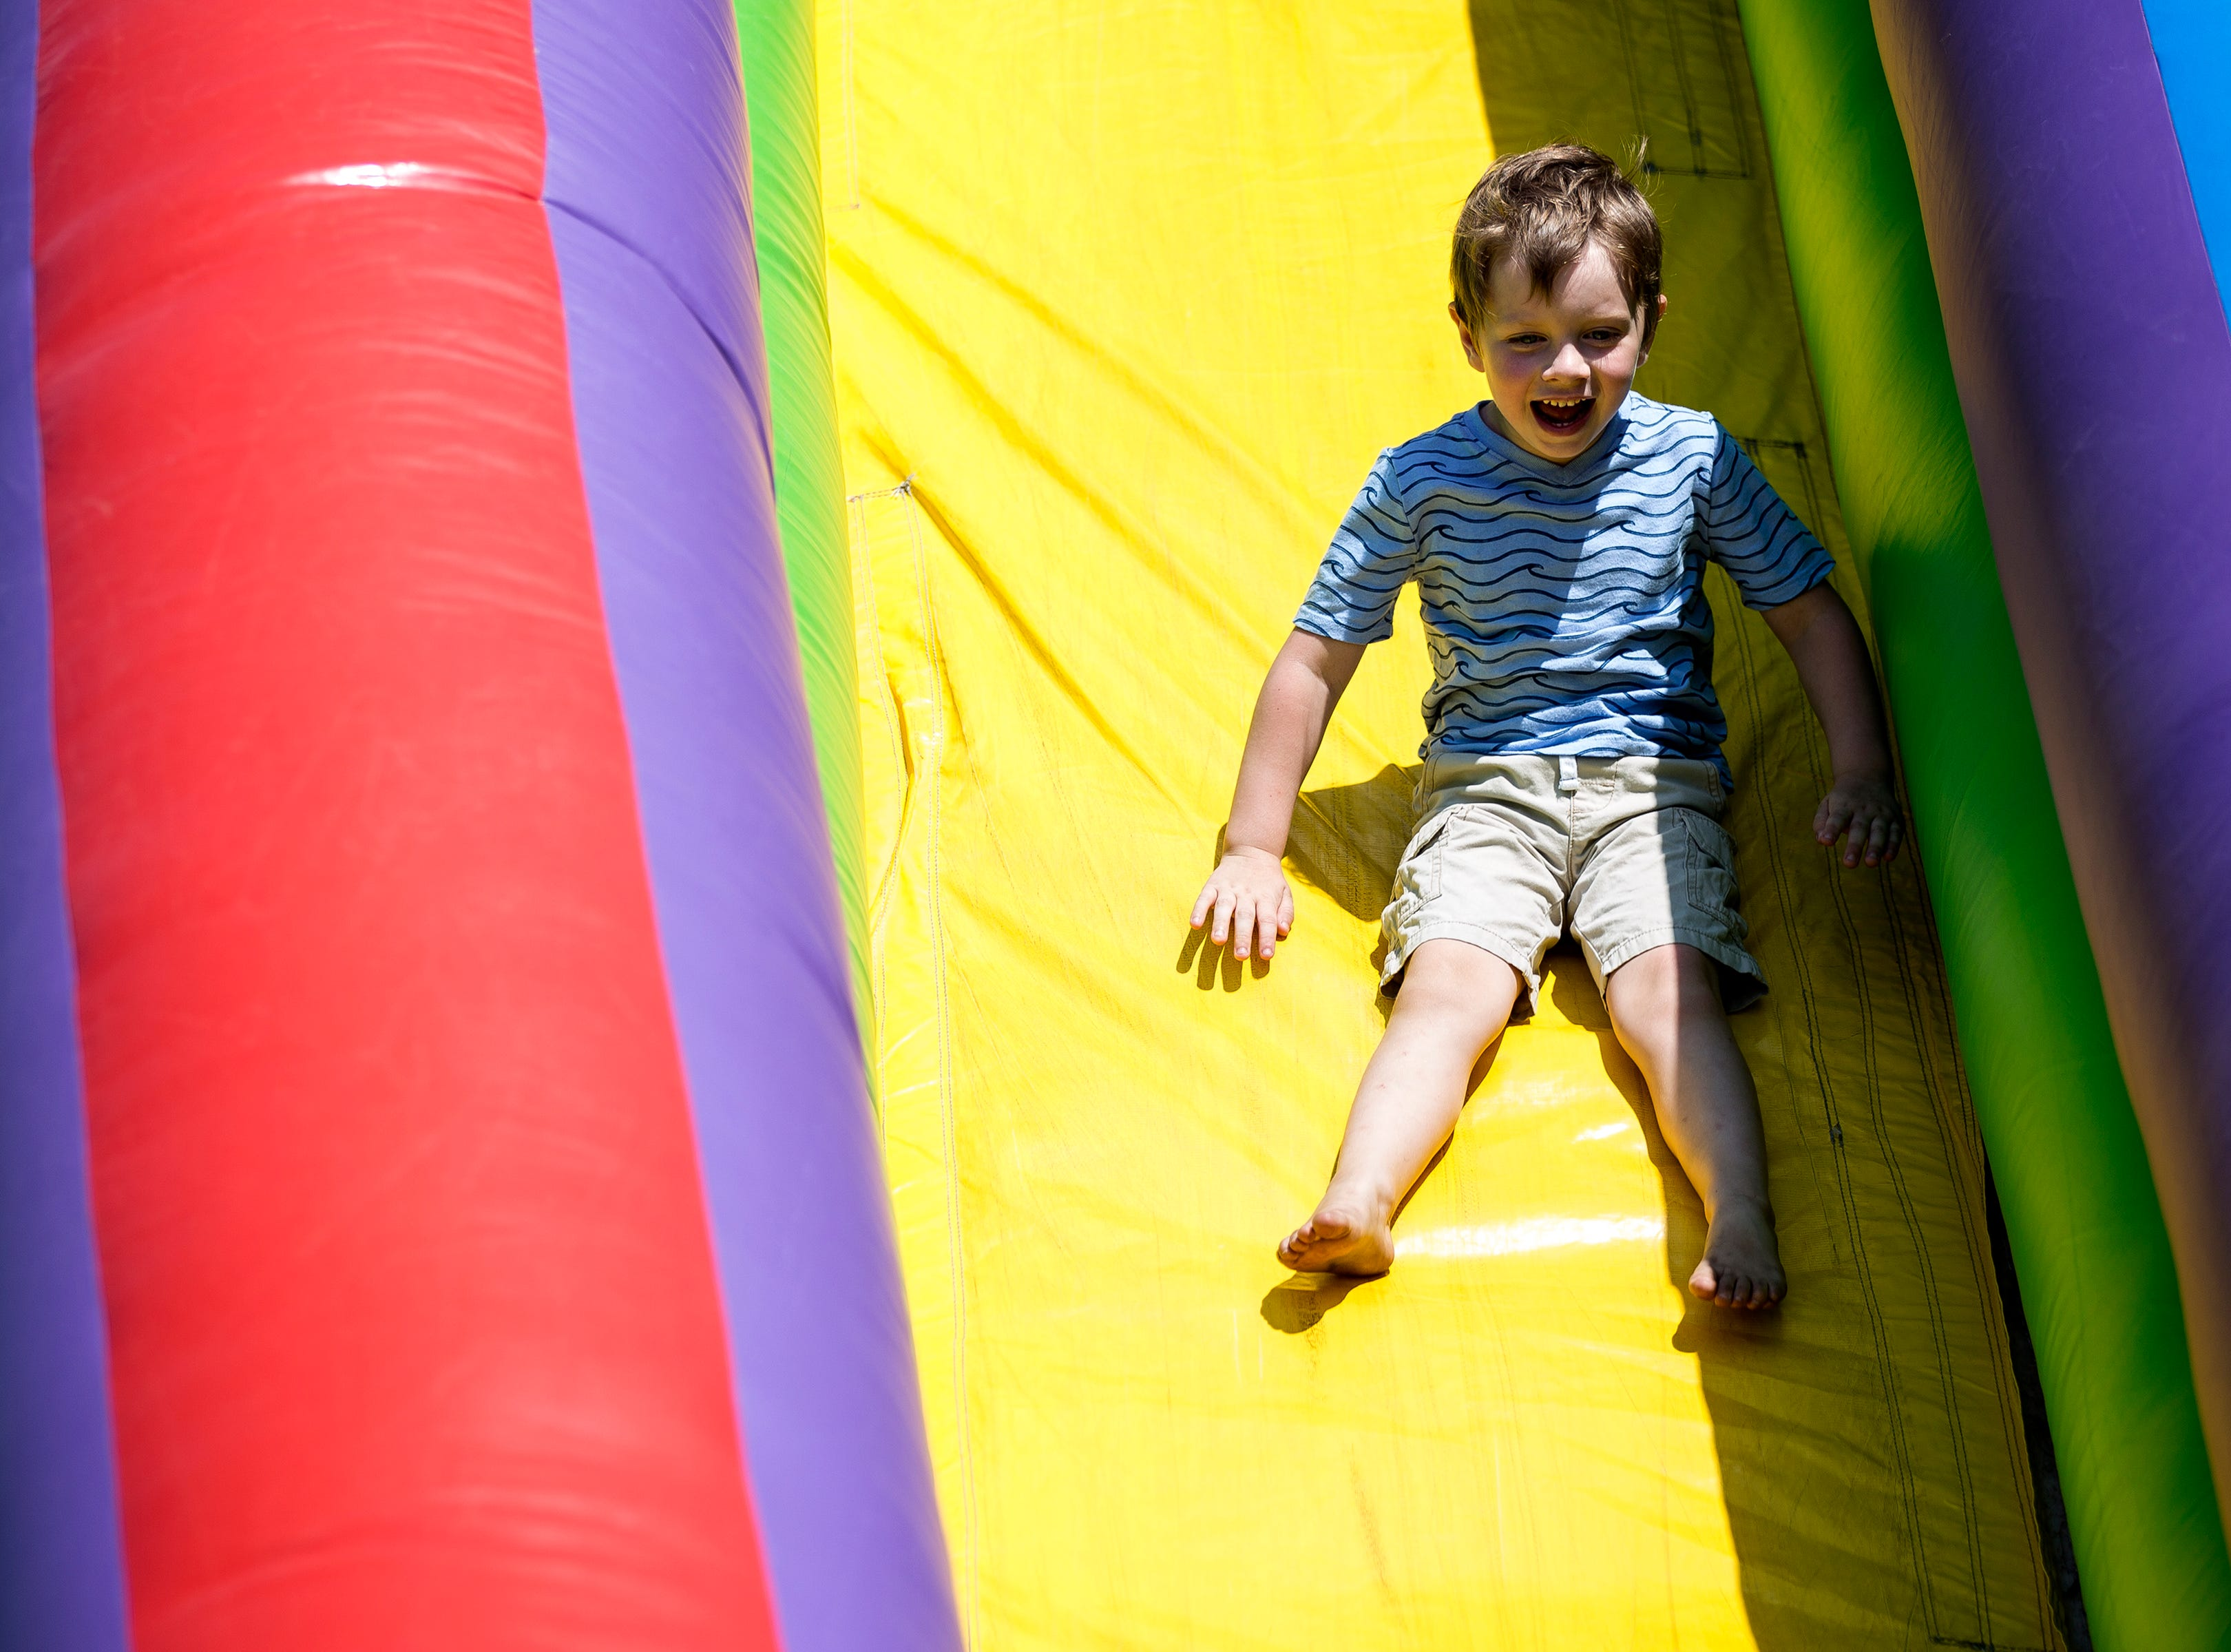 A boy rides down an inflatable slide during Celebrate Plover at Lake Pacawa Park in Plover, Wis., July 28, 2018.